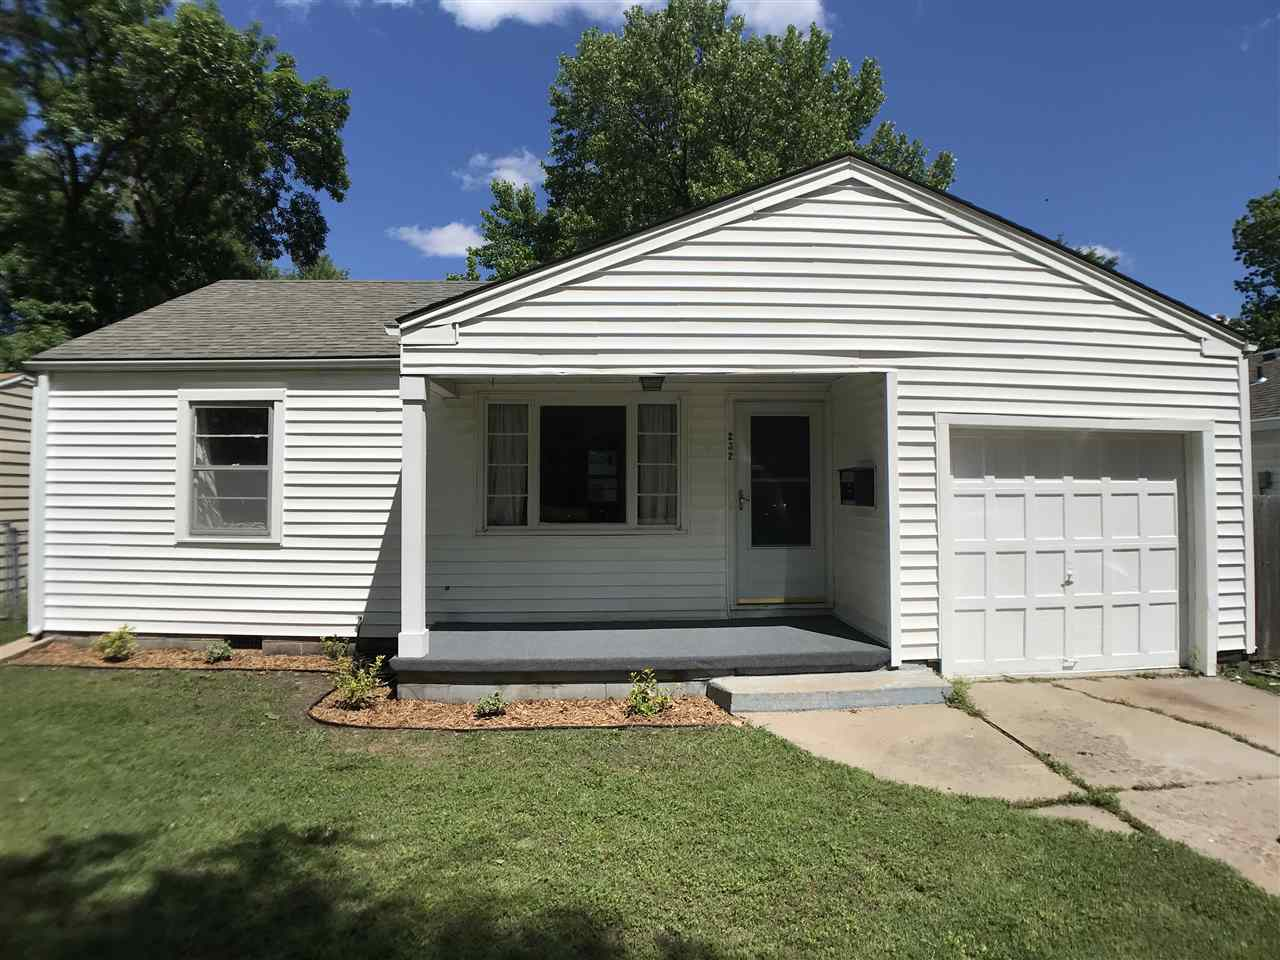 Going....Going....Gone! Recently updated home with huge detached garage! Really cute 2 bedroom, 1 ba